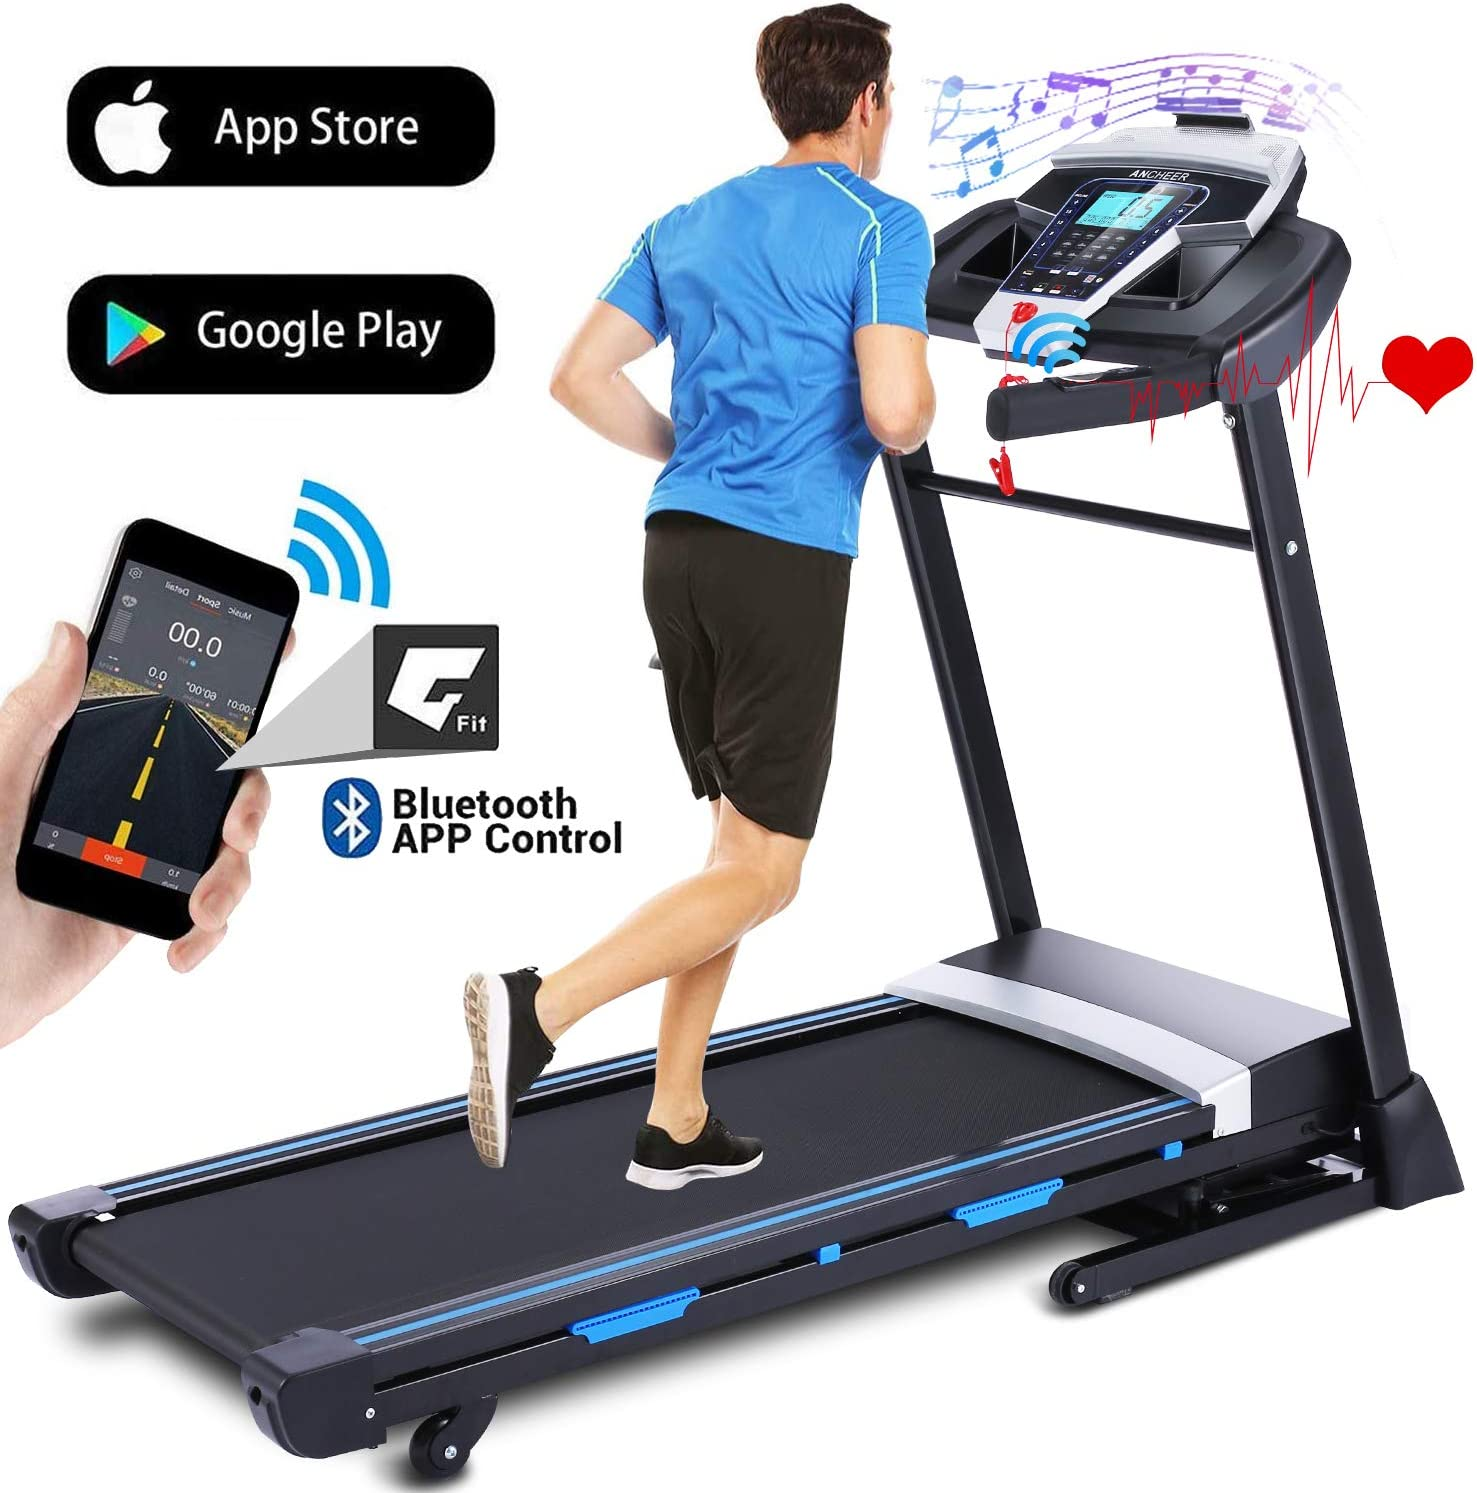 ANCHEER Treadmills for Home, 3.25HP Folding Treadmill with APP Control and Automatic Incline, Running Walking Jogging Machine for Home/Office/Gym Cardio Use